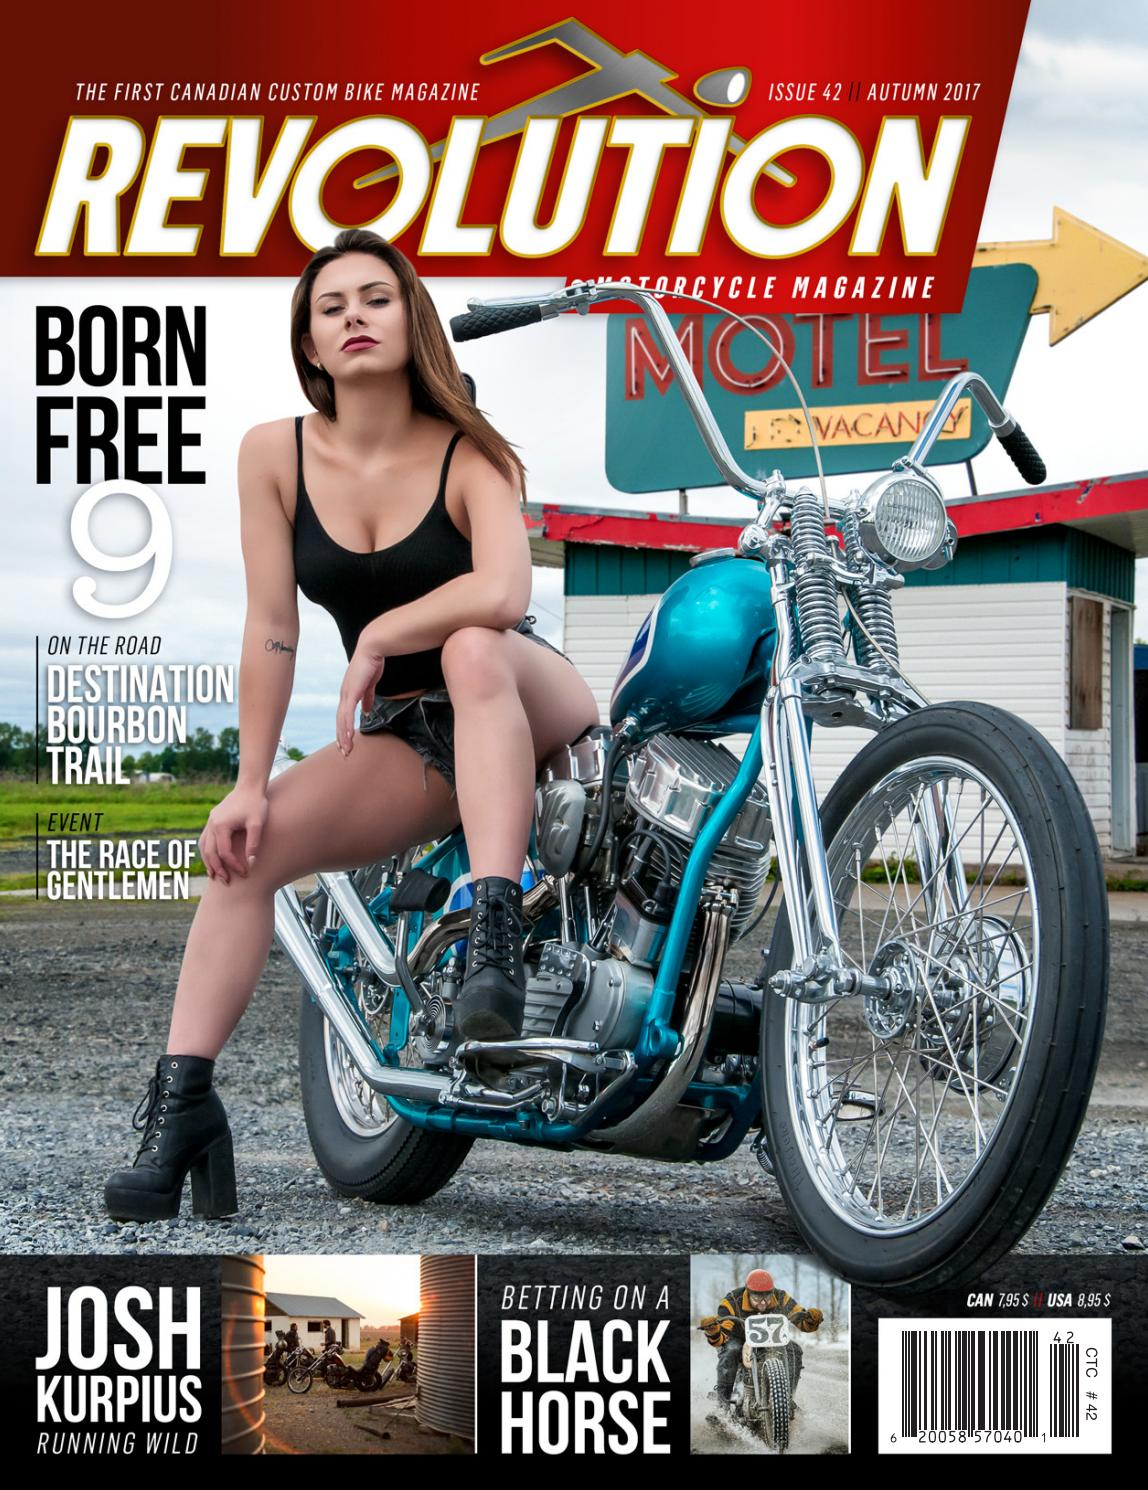 REVOLUTION MOTORCYCLE MAG - English - Issue 42 Autumn 2017 by